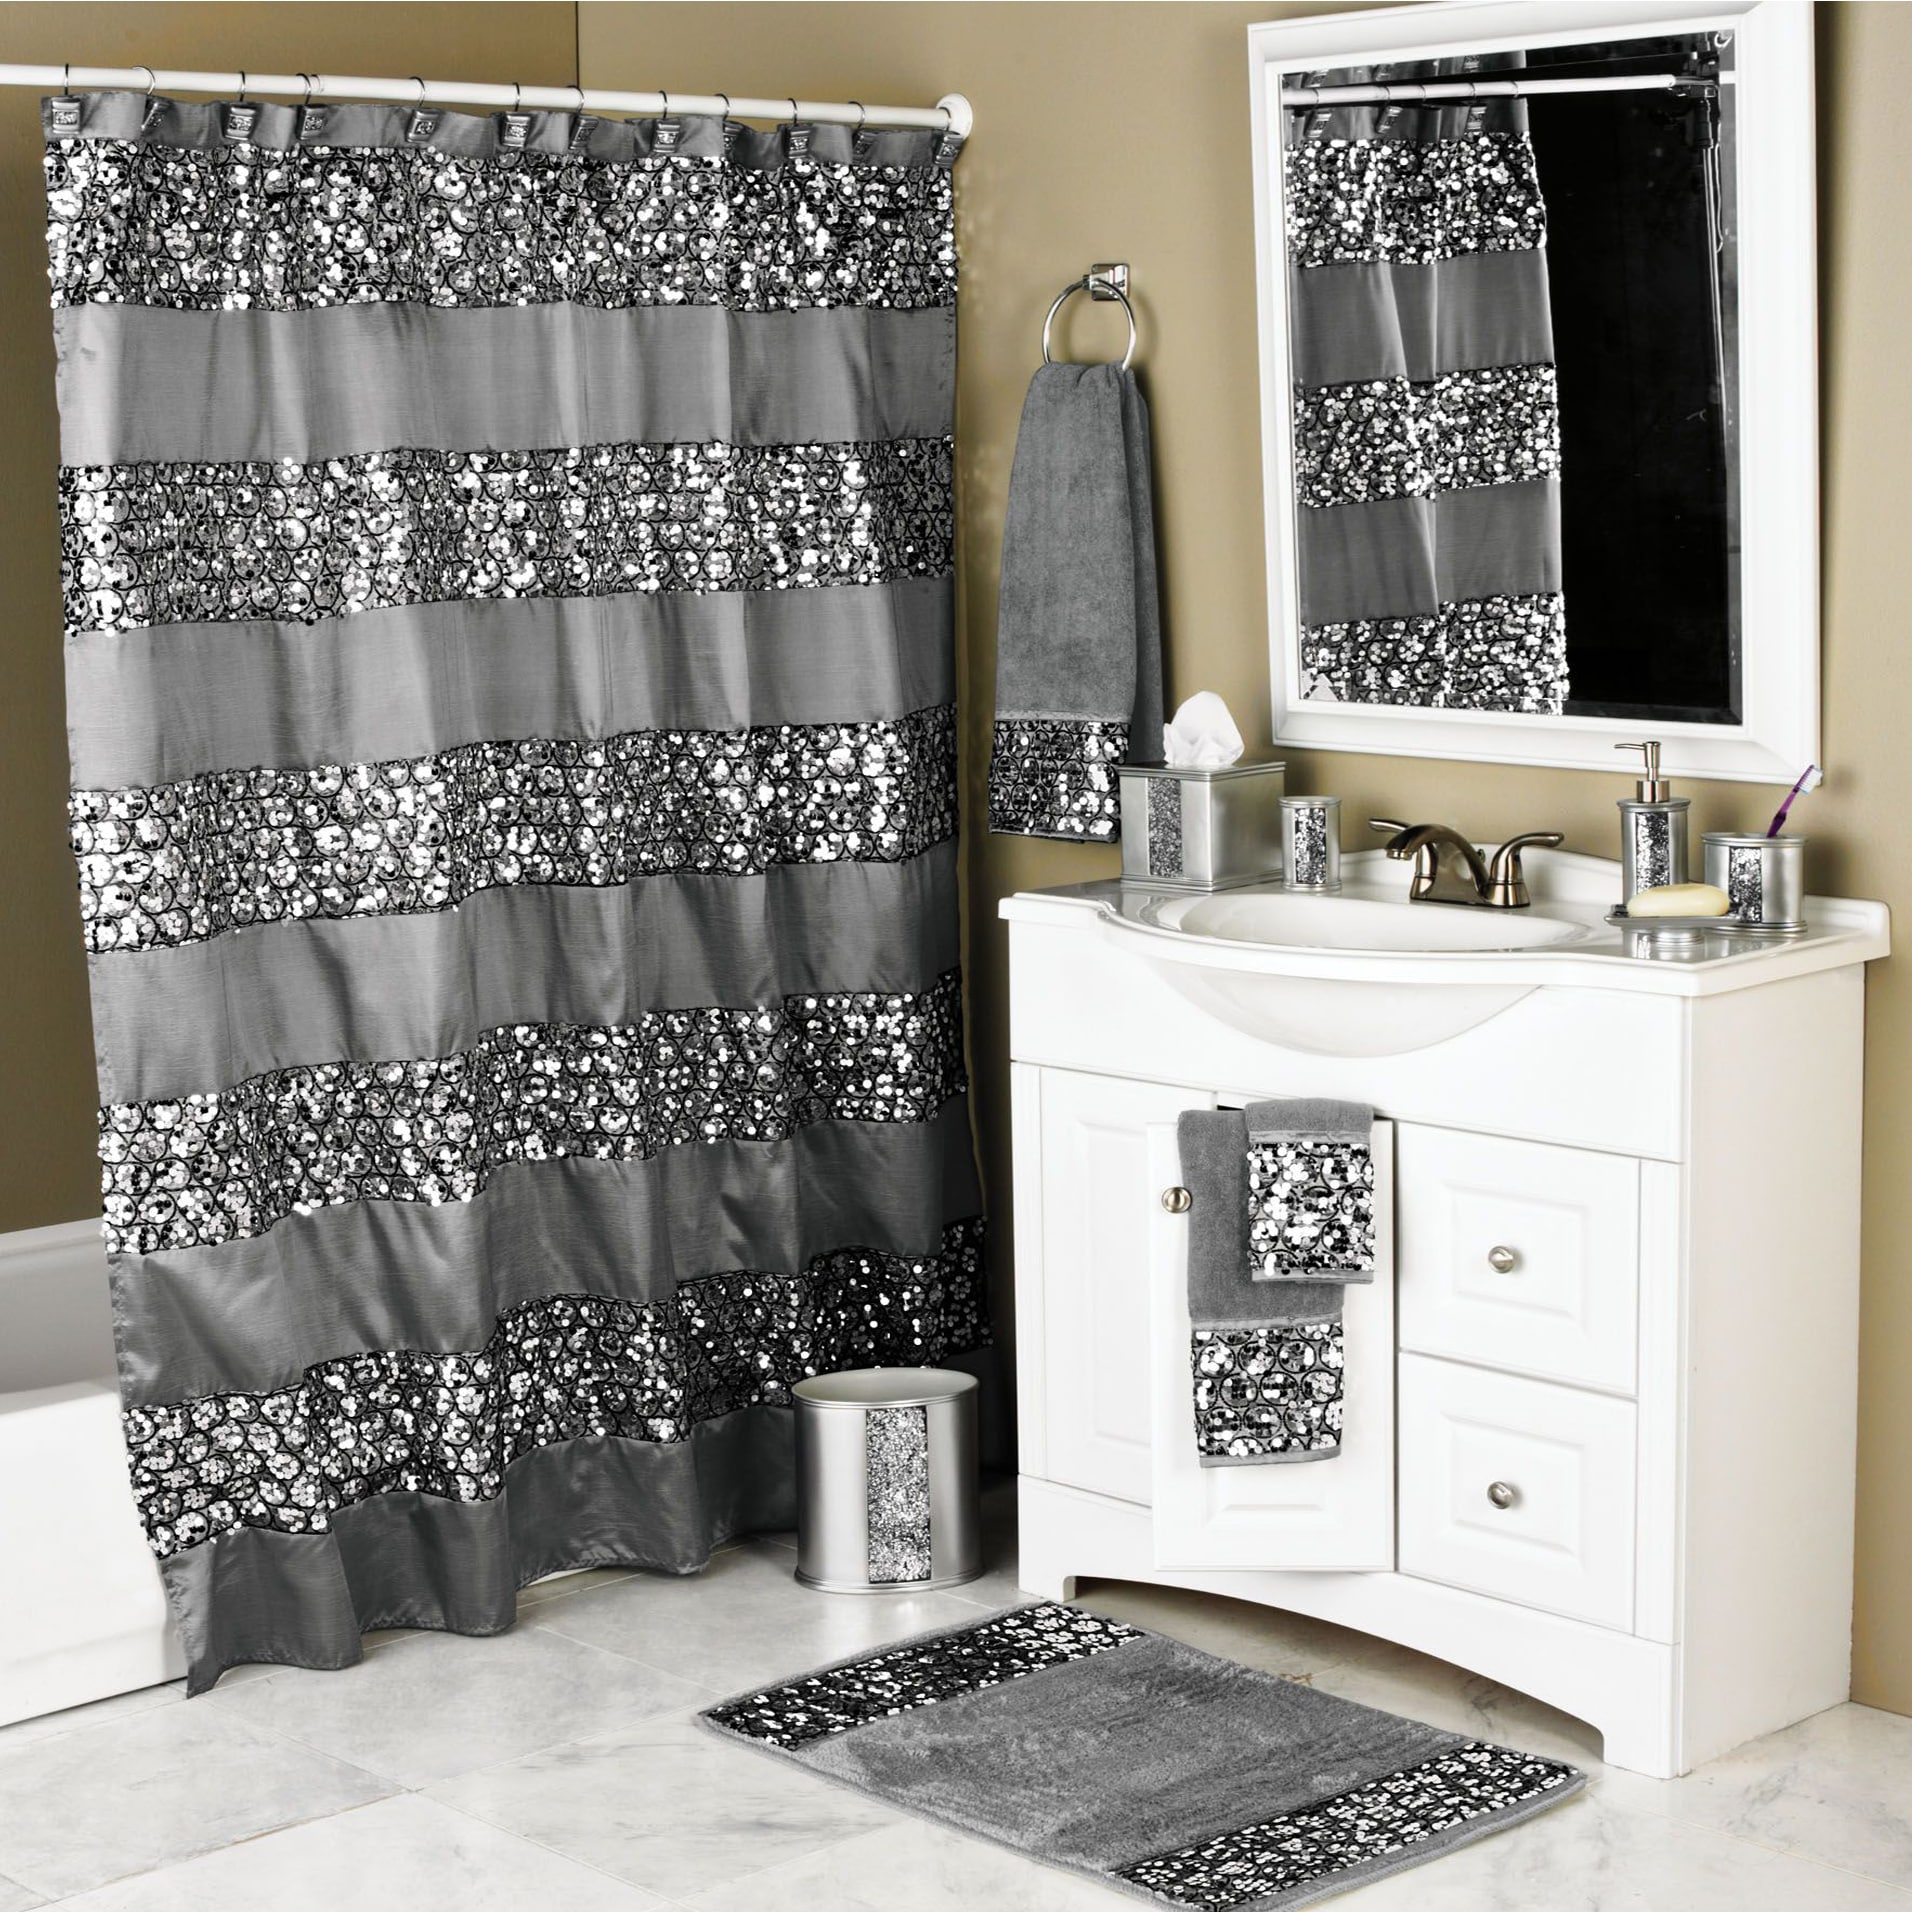 Luxury Shower Curtain And Hooks Set Or Separates